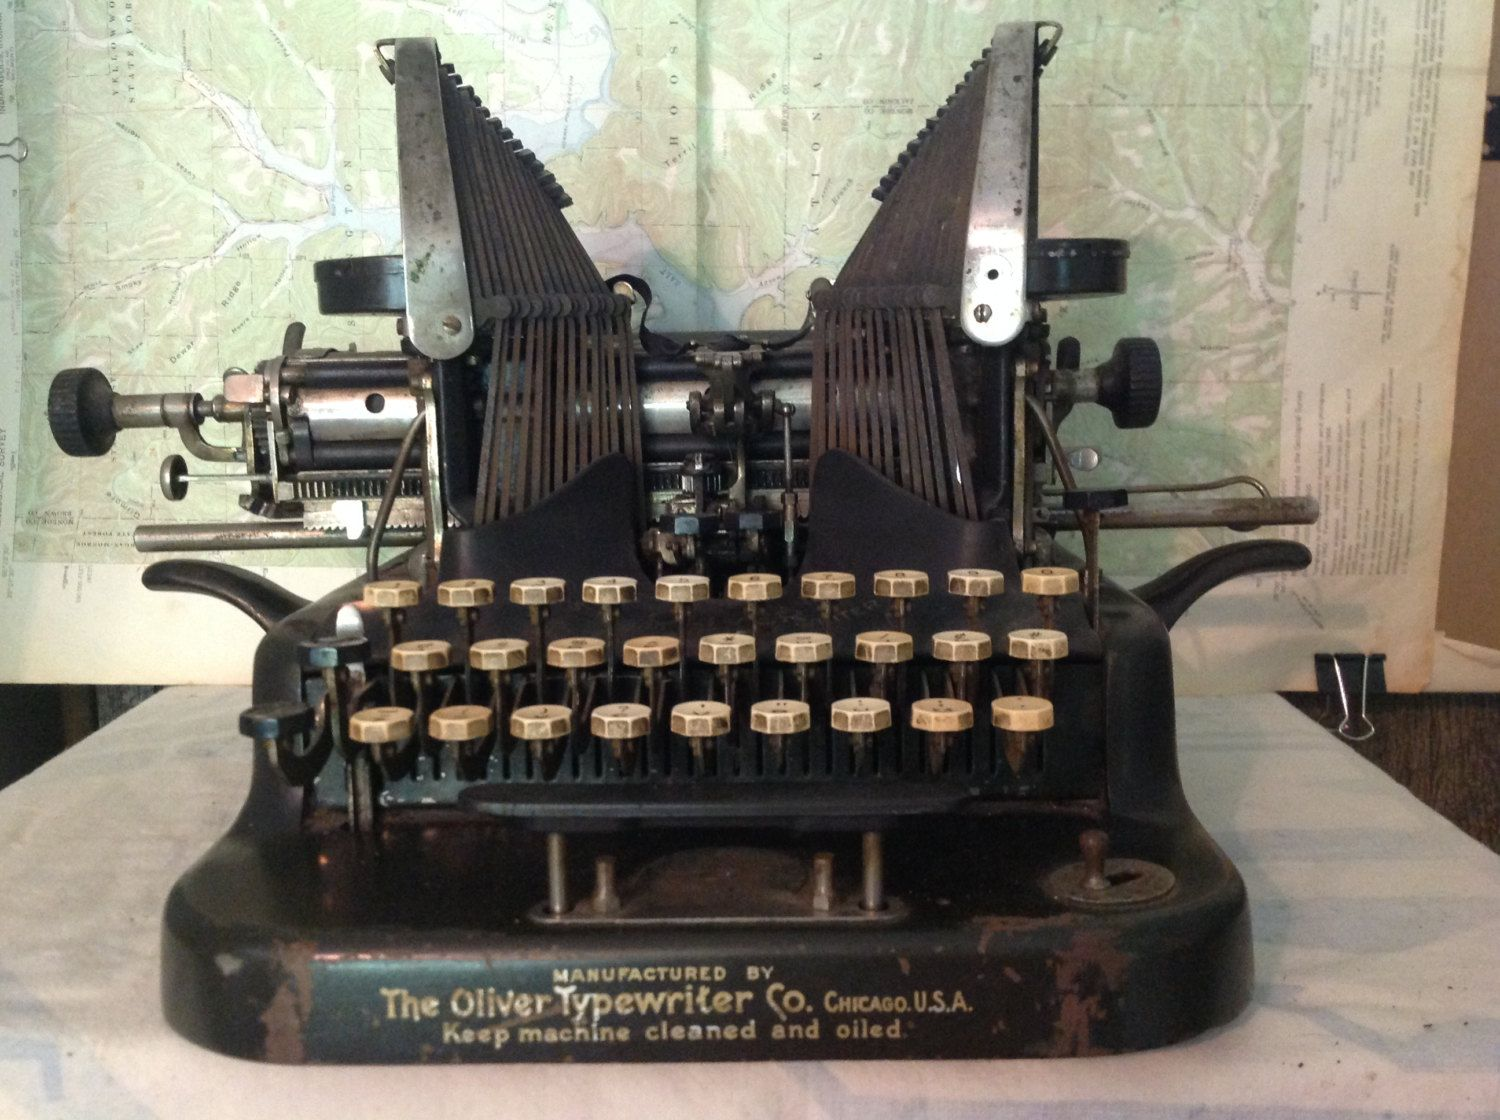 Antique Oliver No. 5 Manual Typewriter with Metal Cover Patent 1906 by IndustrialRev on Etsy